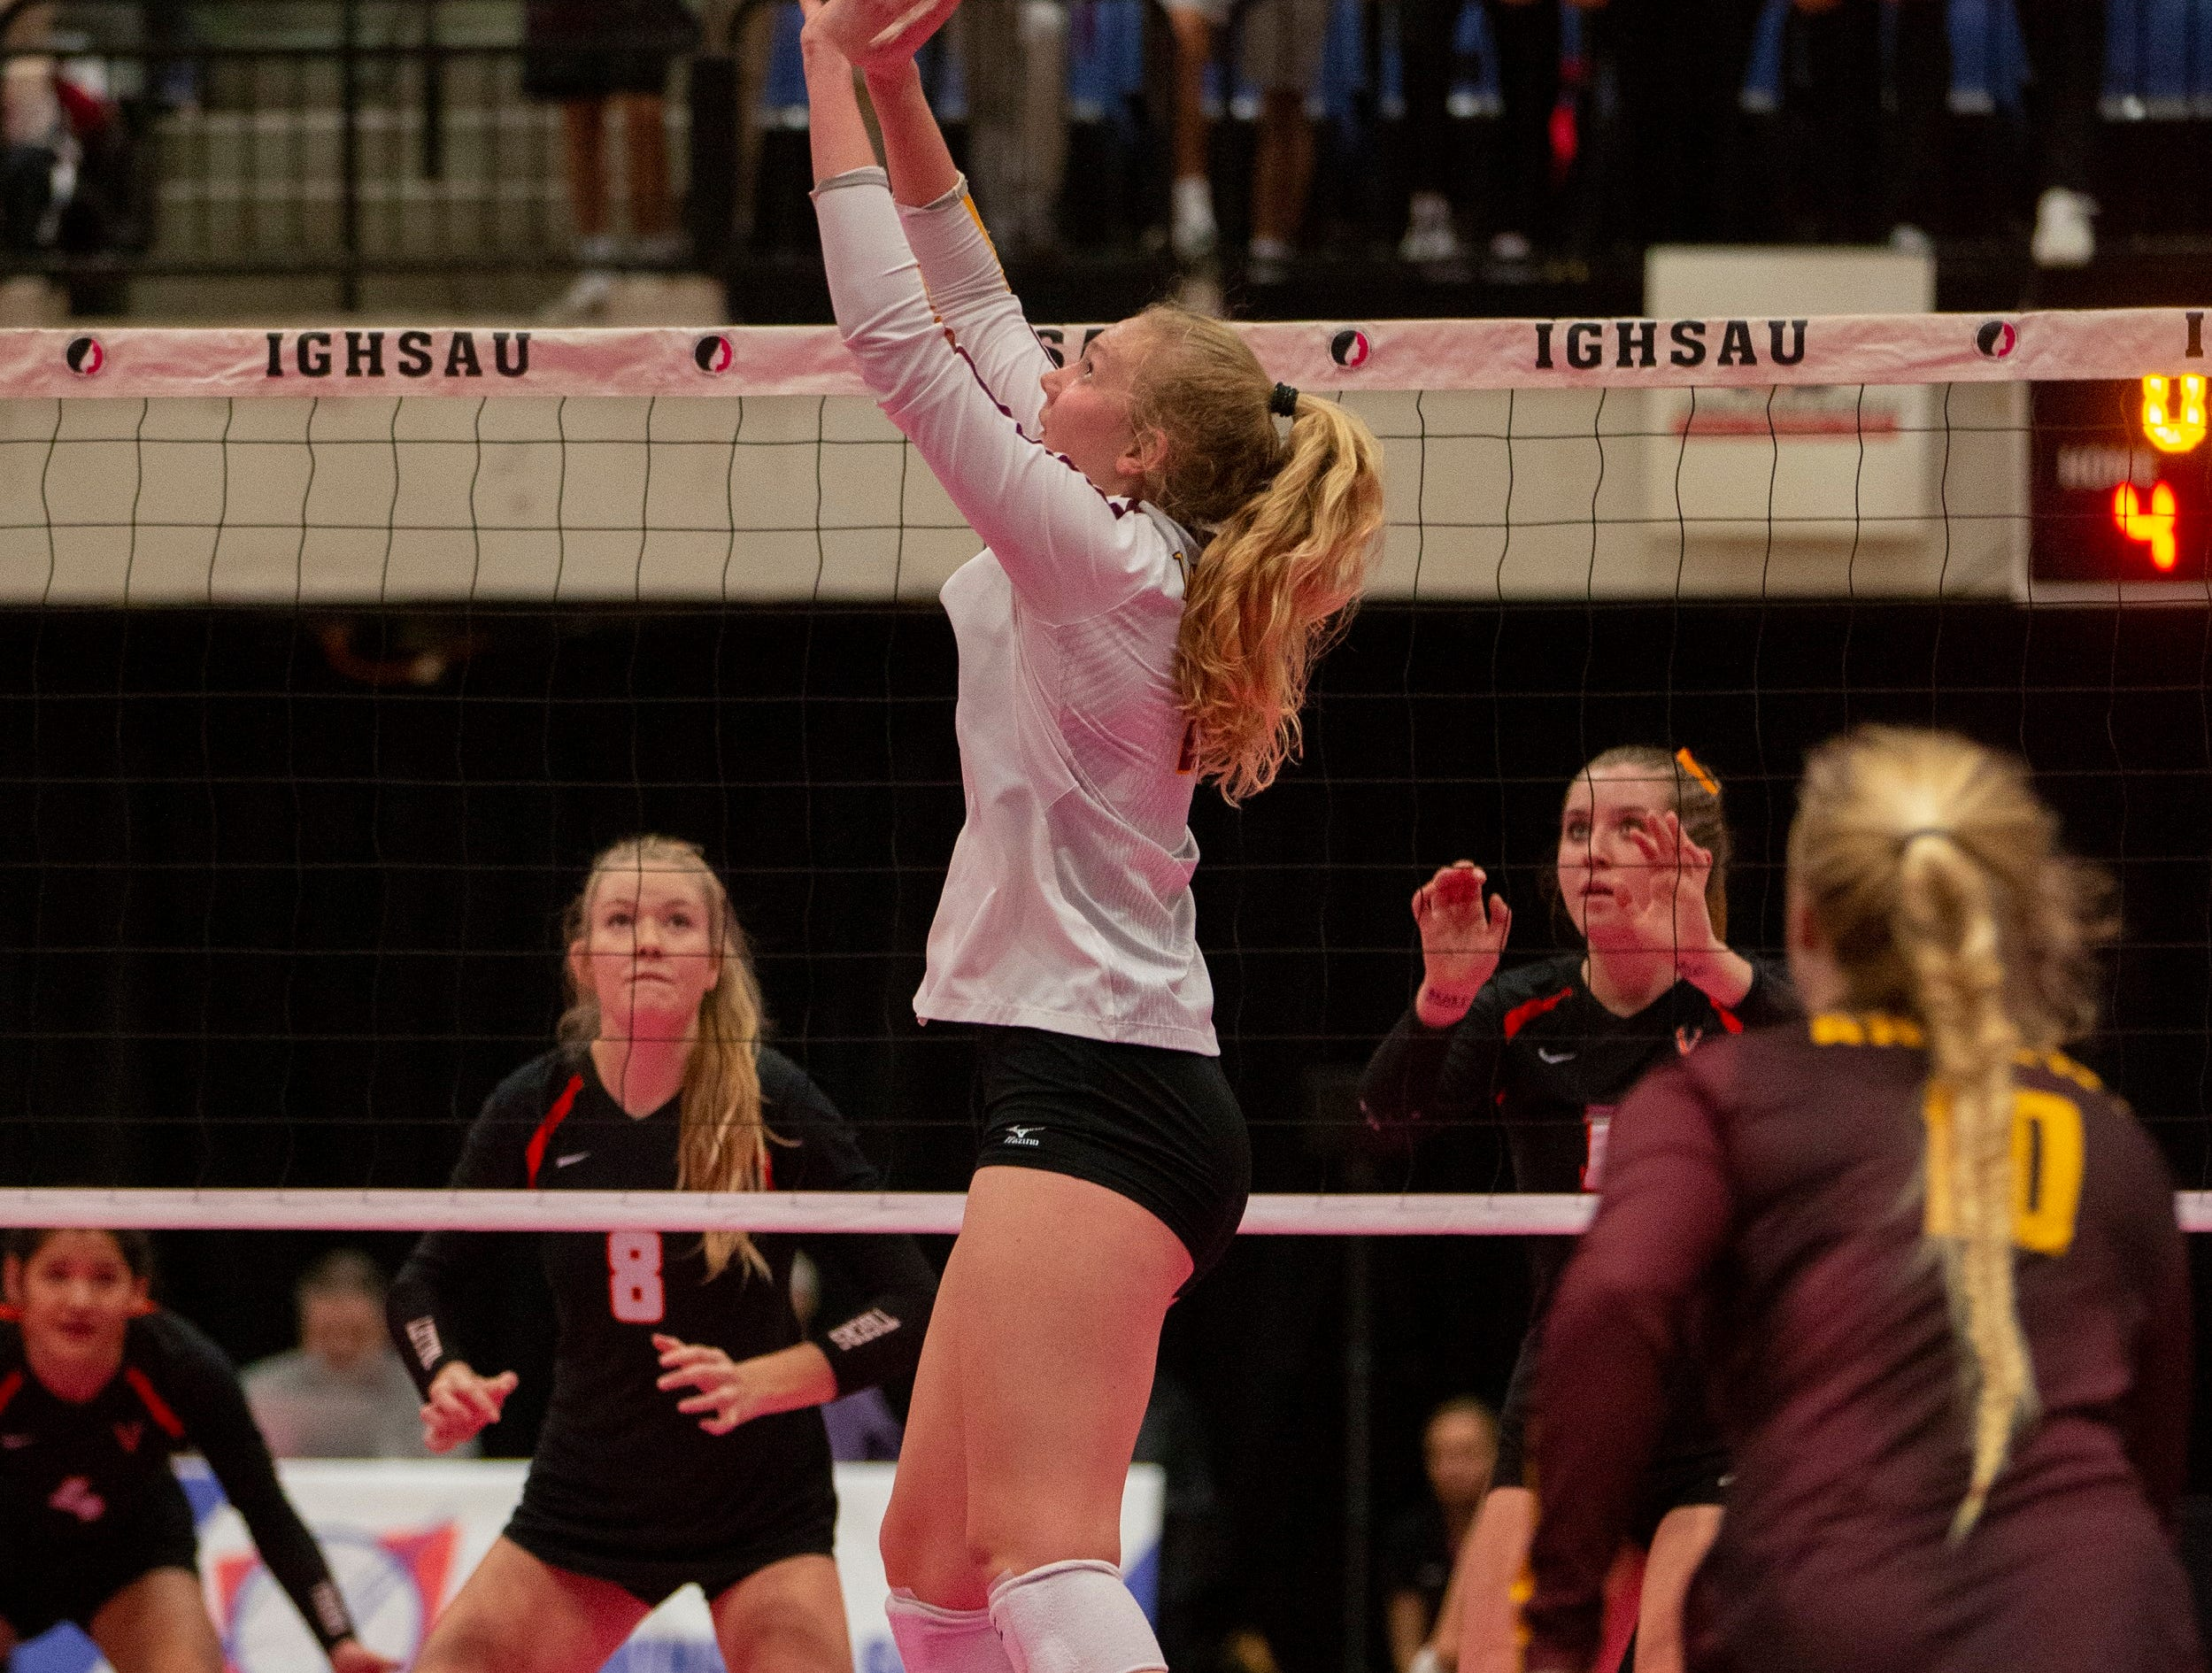 Ankeny's Phyona Schrader sets the ball during a quarterfinal match of the Iowa girls state volleyball tournament in Cedar Rapids.